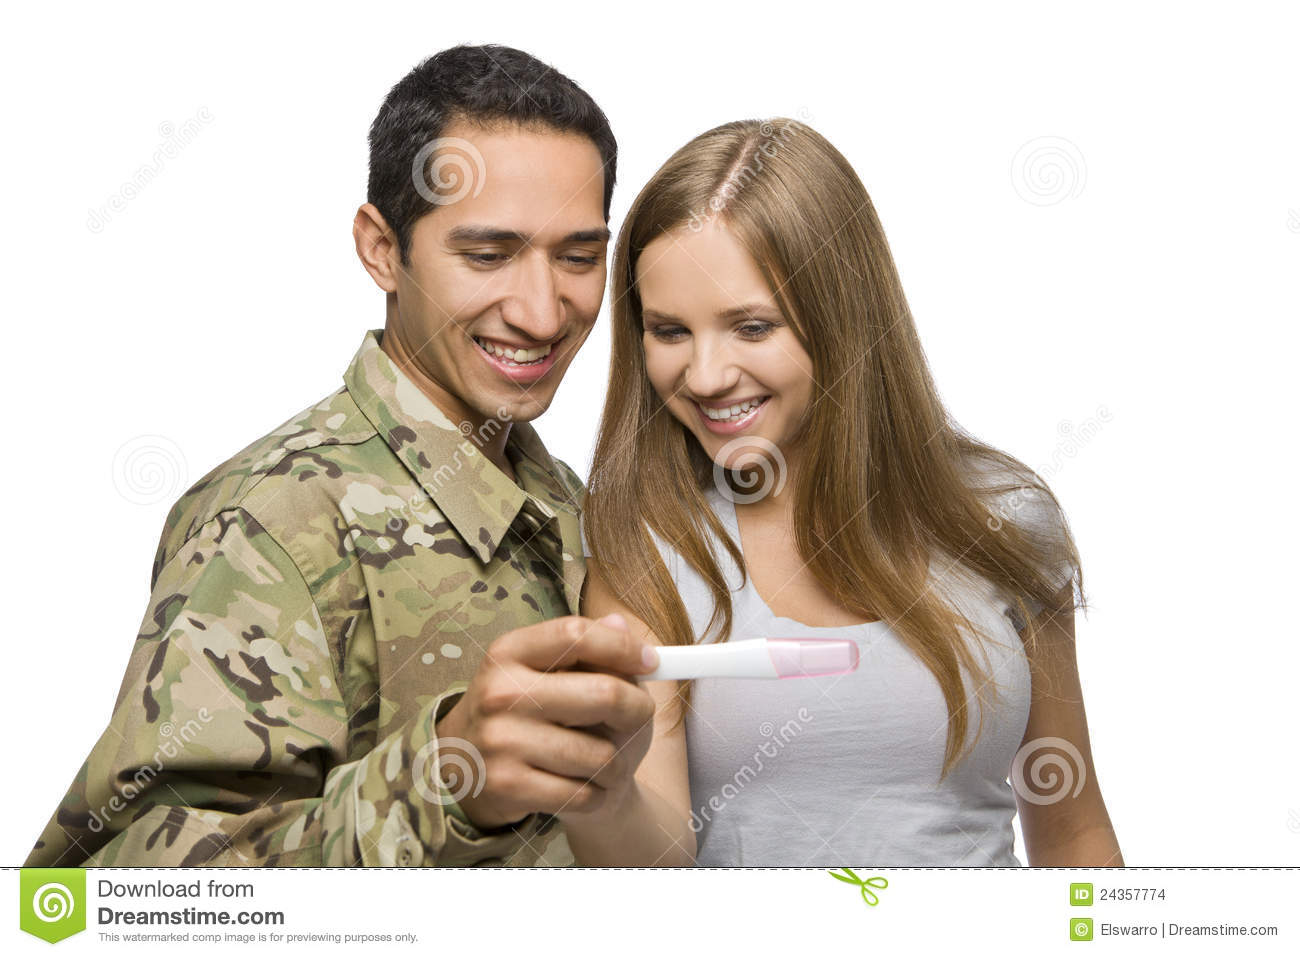 Military Man and His Wife Smile at Pregnancy Test